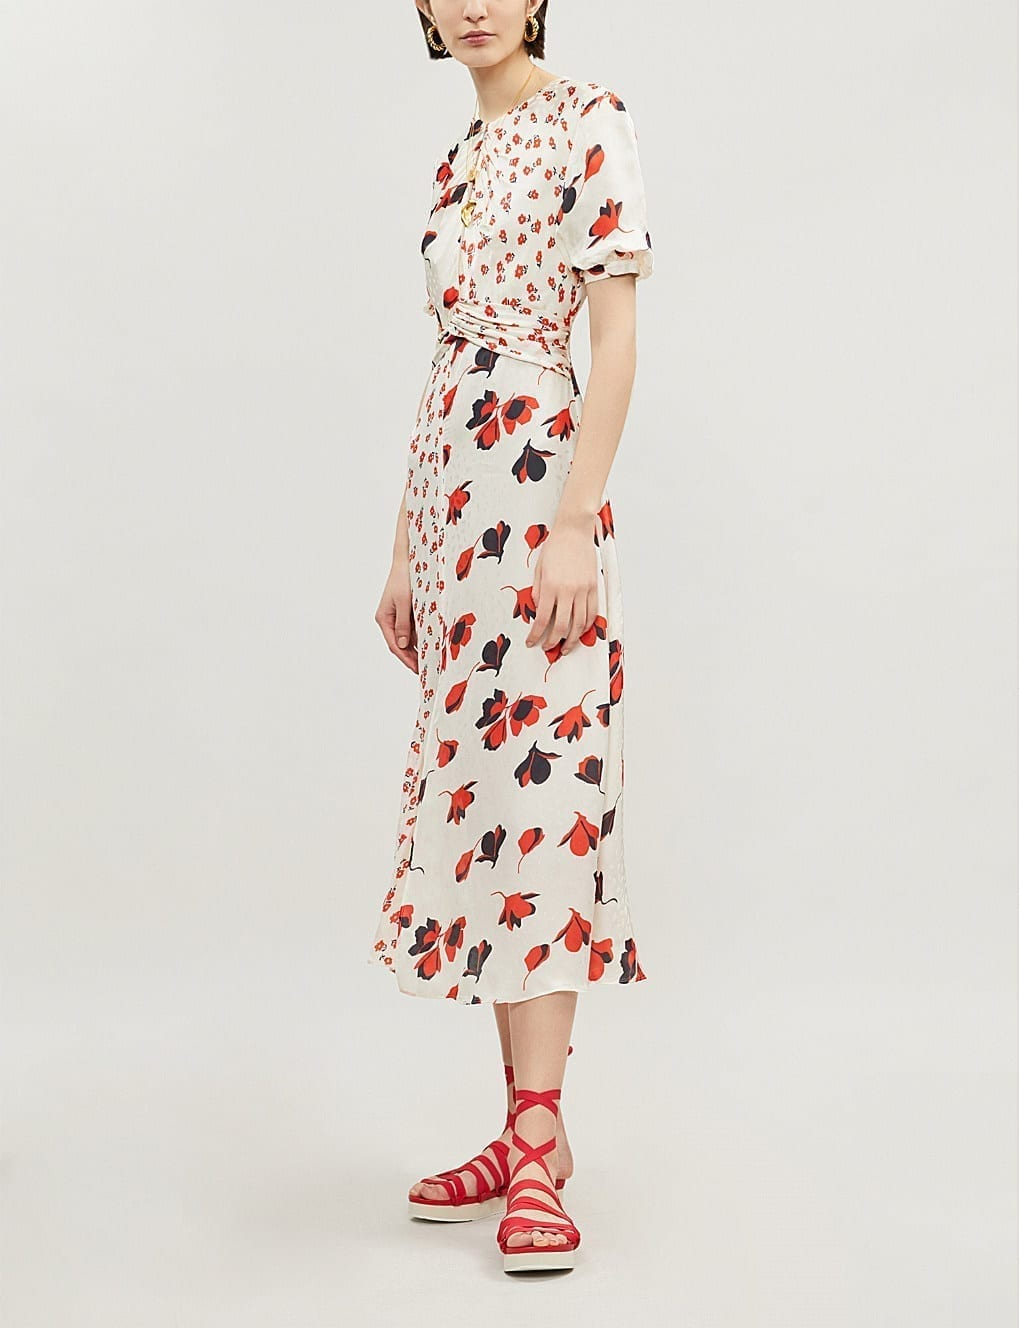 SELF-PORTRAIT Mixed Floral-Print Crepe Cream Dress